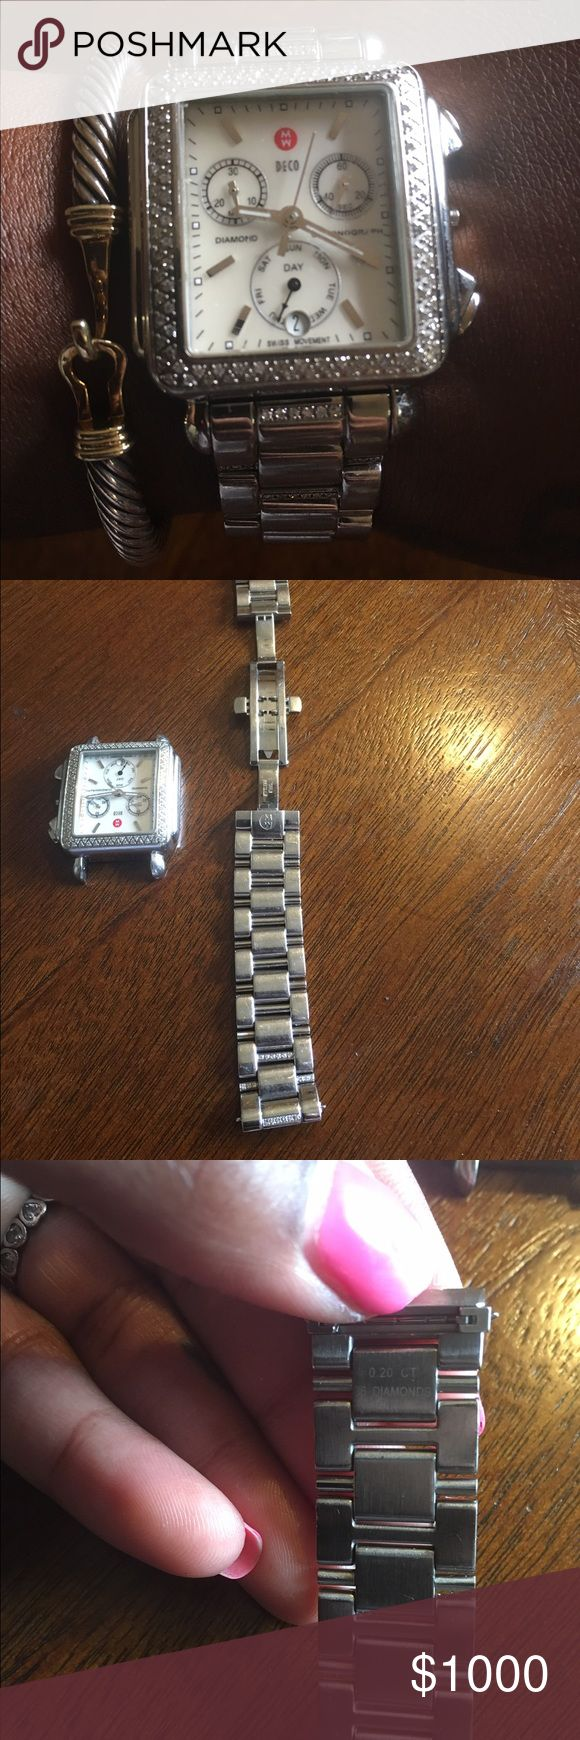 Michelle Deco Diamond Encrusted Watch 16 mm Michelle Diamond Encrusted Watch , Stainless Steel Band with .20 diamonds. Watch needs alittle TLC . Took to torneau and to get fixed will coast around 300 needs new crown being that it's missing and moisture related damage fixed. Can purchase separate or together . Recently replaced battery. Watch works fine otherwise Michele Jewelry